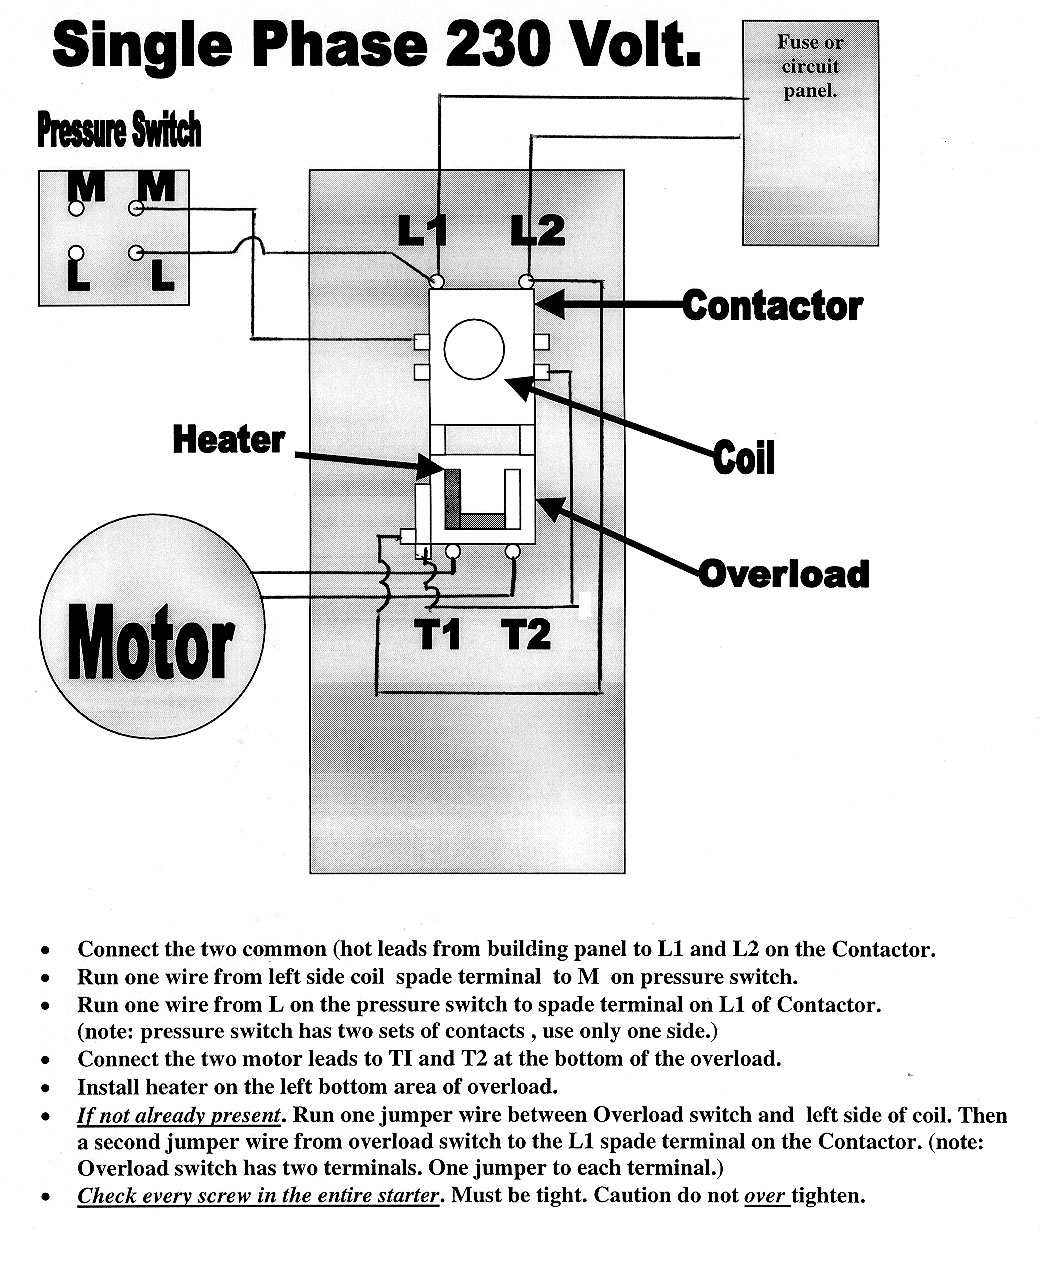 3 Phase 230 Volt Motor Wiring Diagram - All Wiring Diagram Data - 240 Volt Wiring Diagram